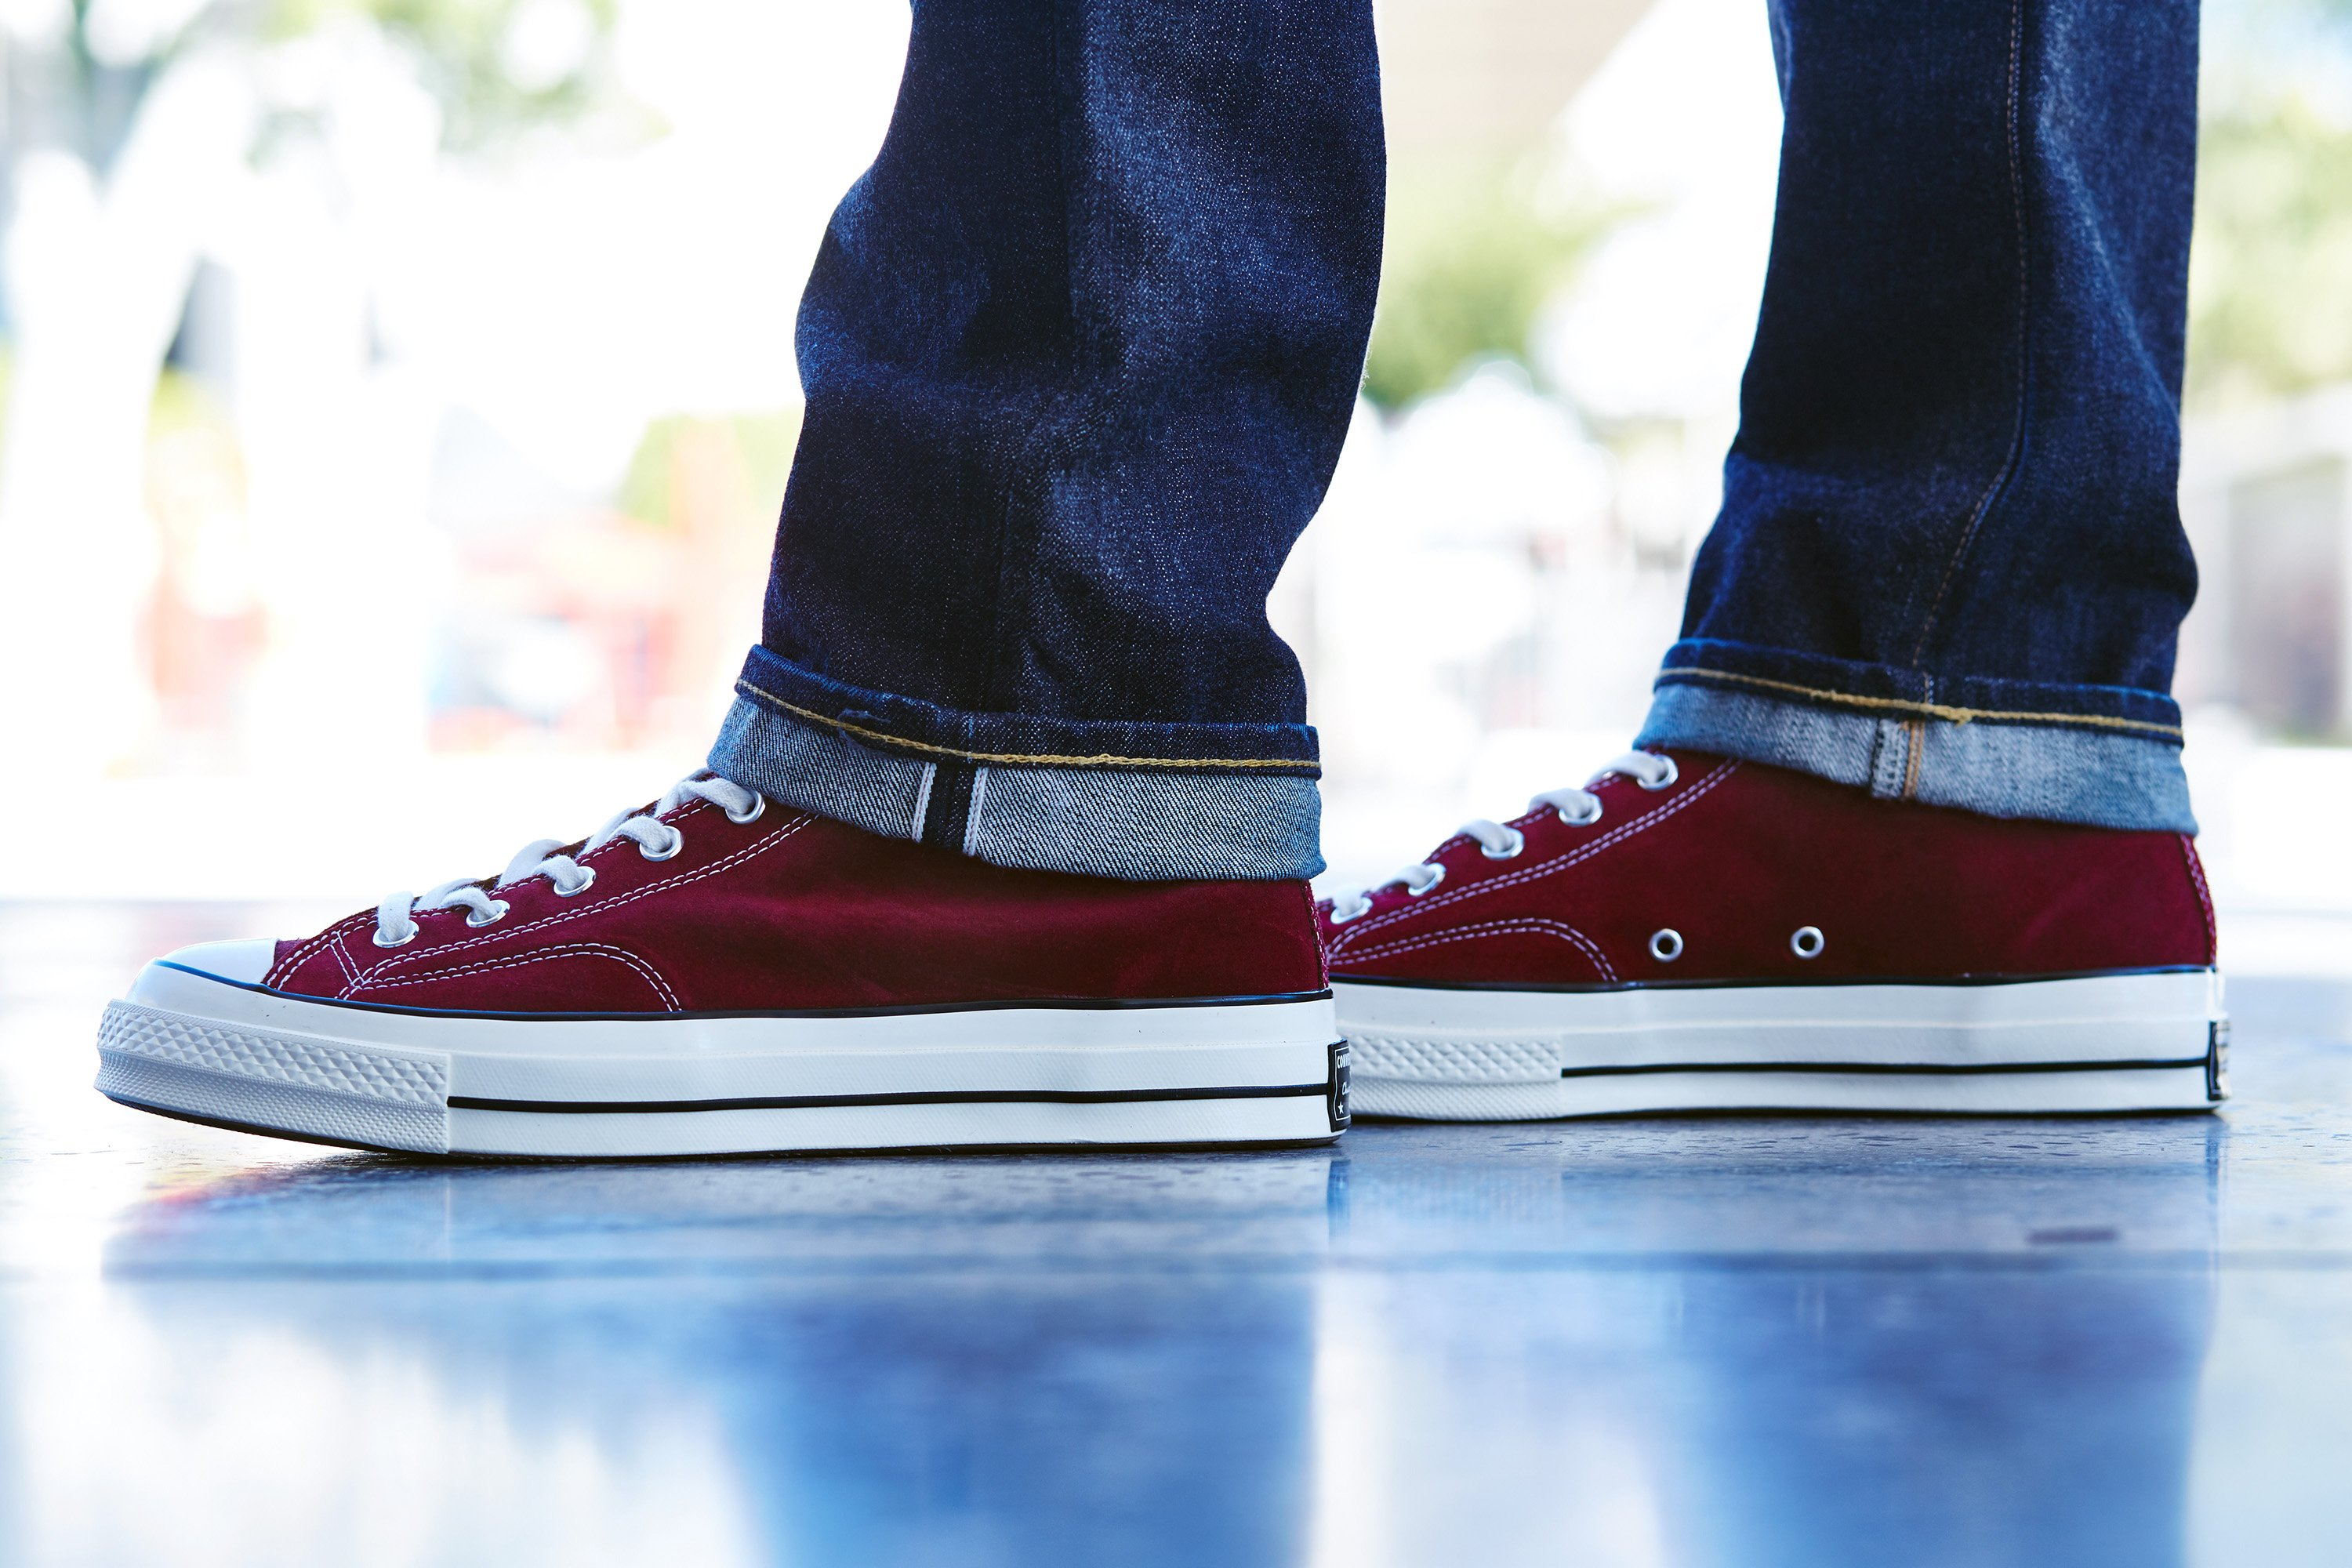 Converse Chuck Taylor 2 Low On Feet